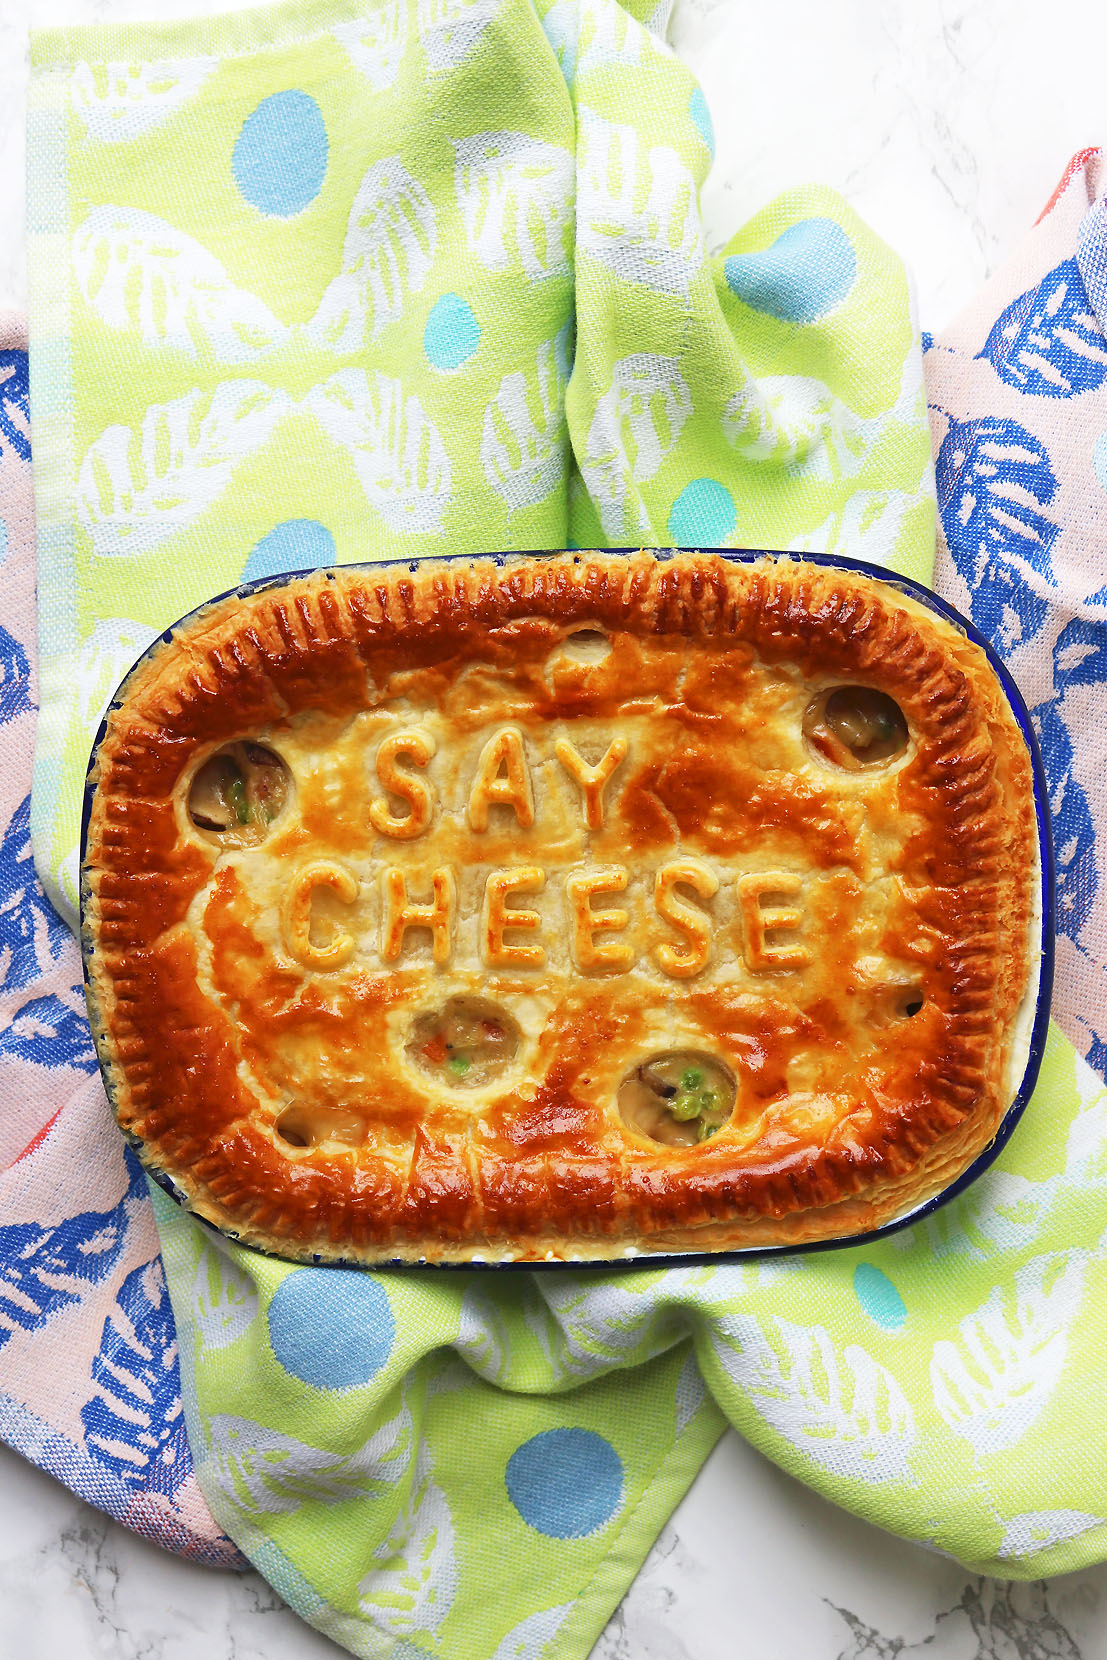 This Cheesey Vegetable Pie is packed full of carrots, leeks, mushrooms and peas.